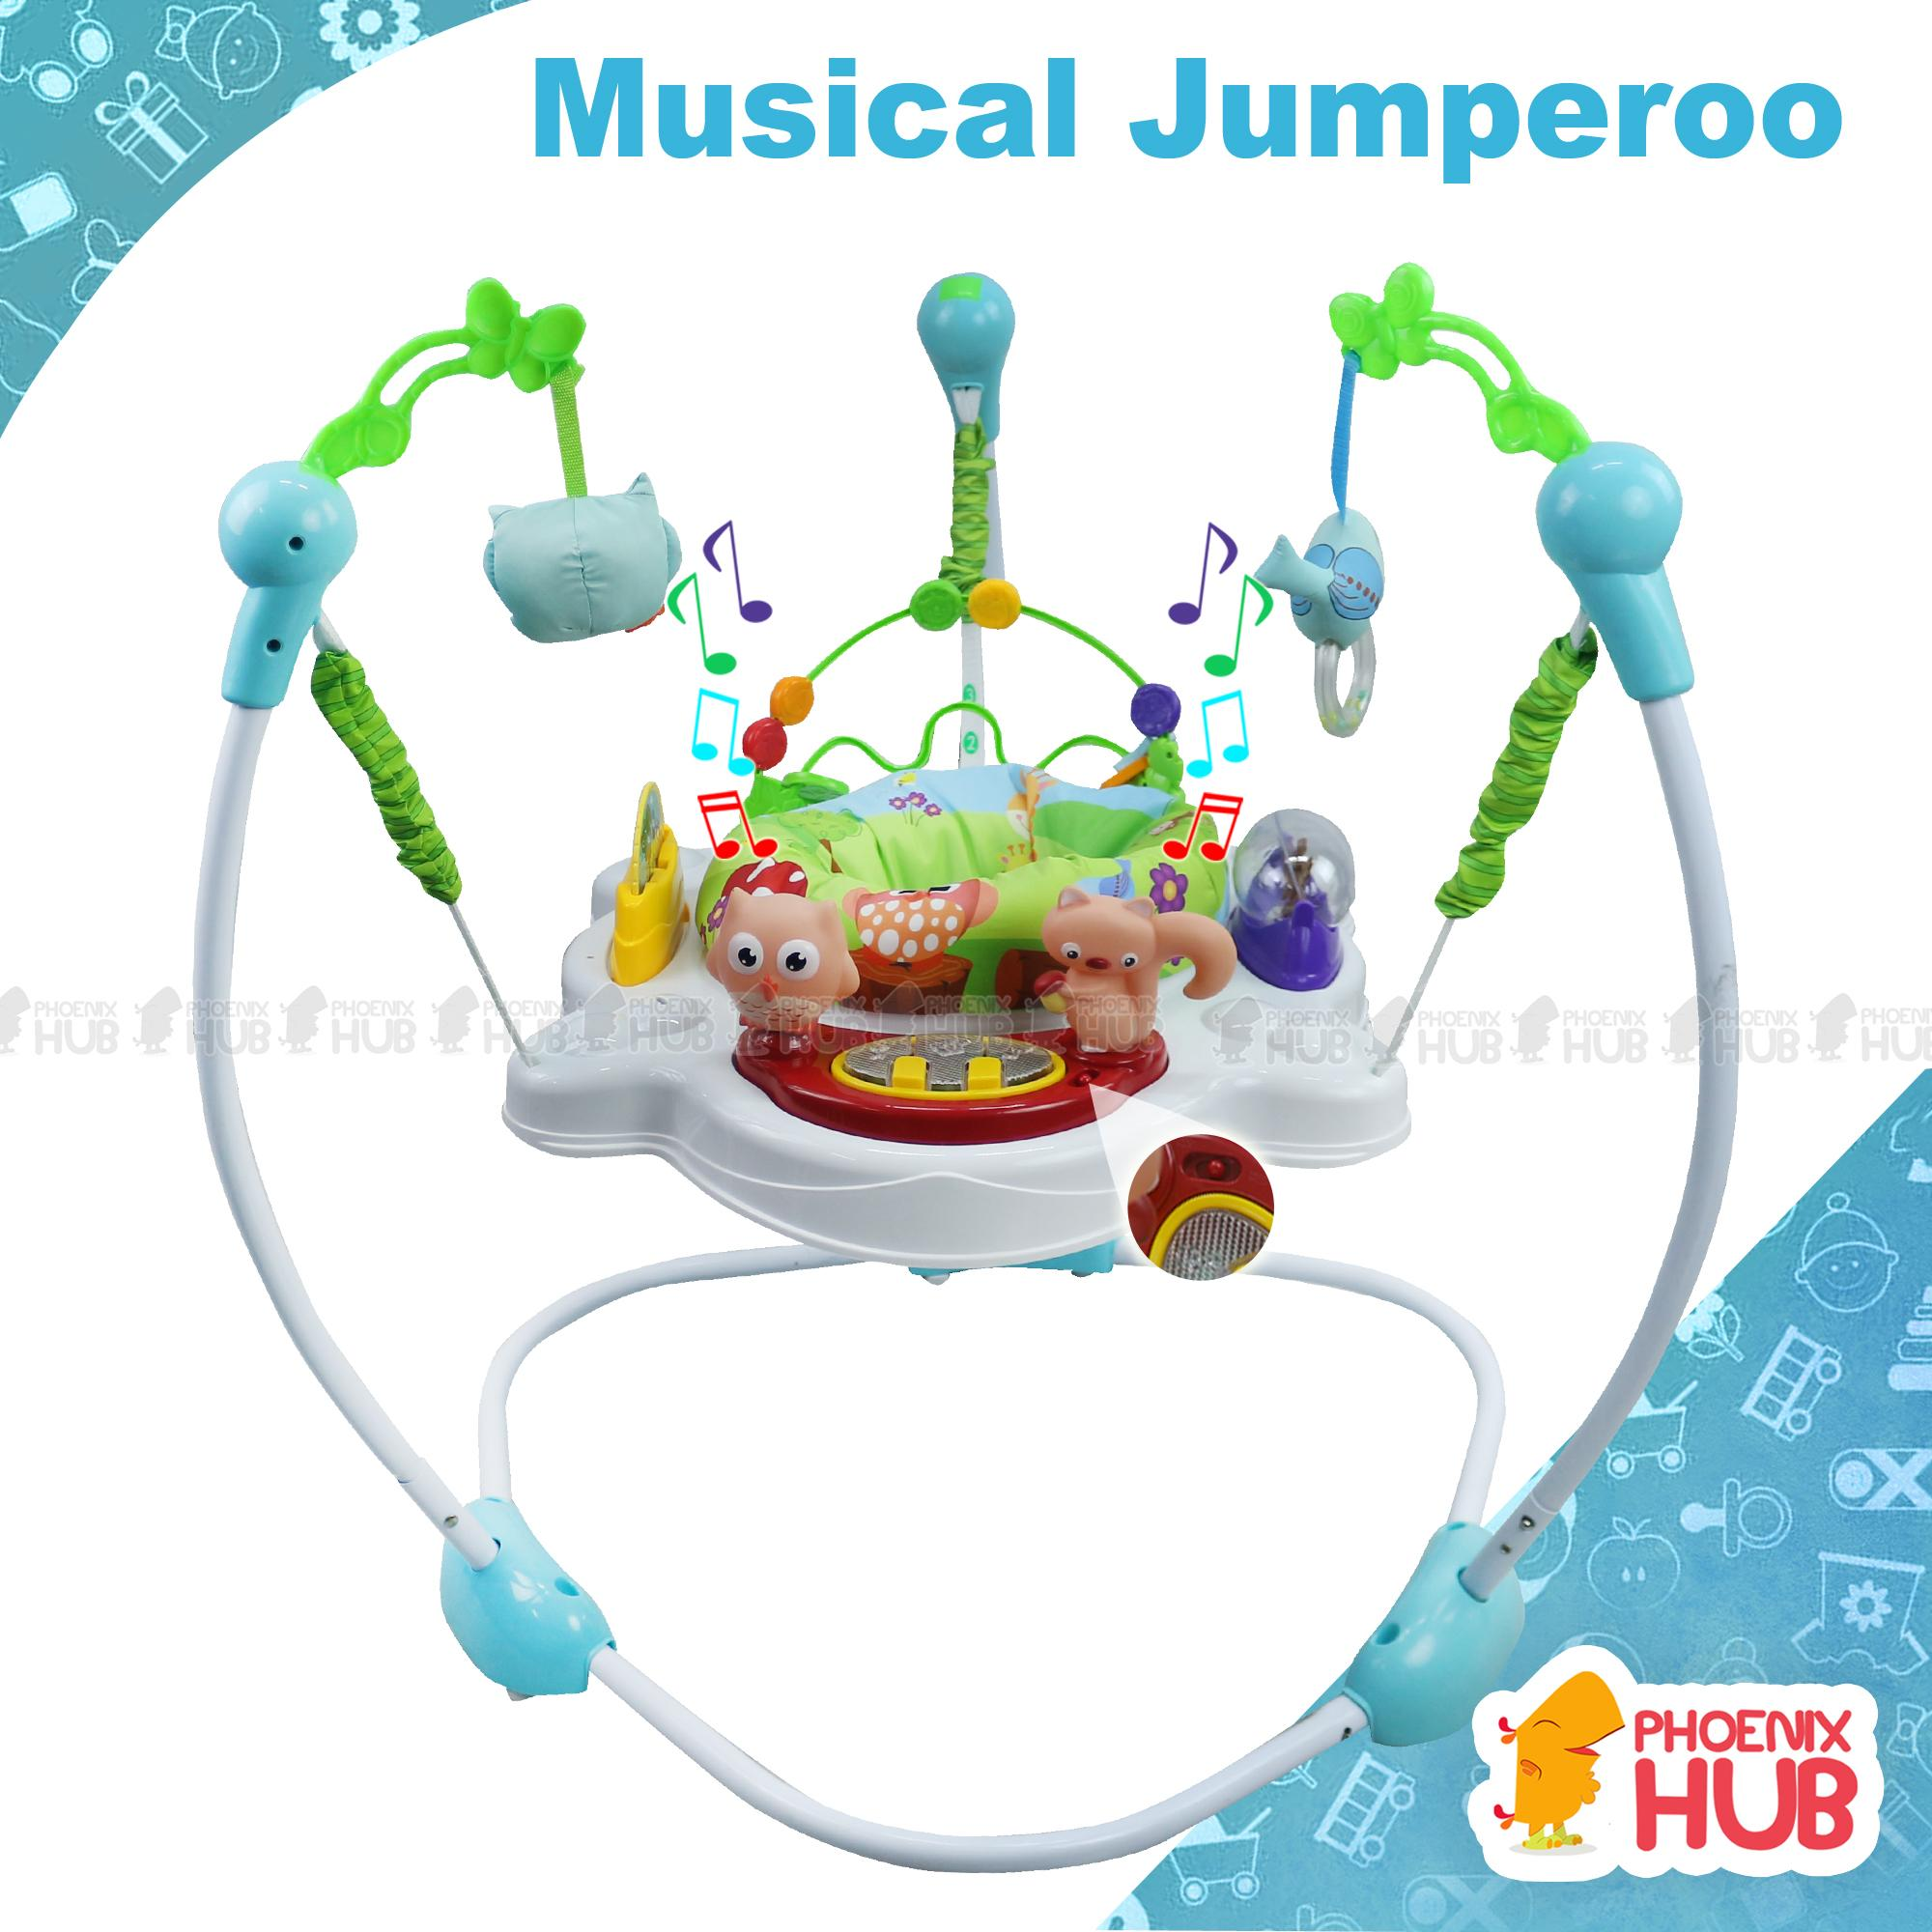 Phoenix Hub Jumperoo Musical & Lights Rainforest Swing Baby Toddler Chair By Phoenix Hub.